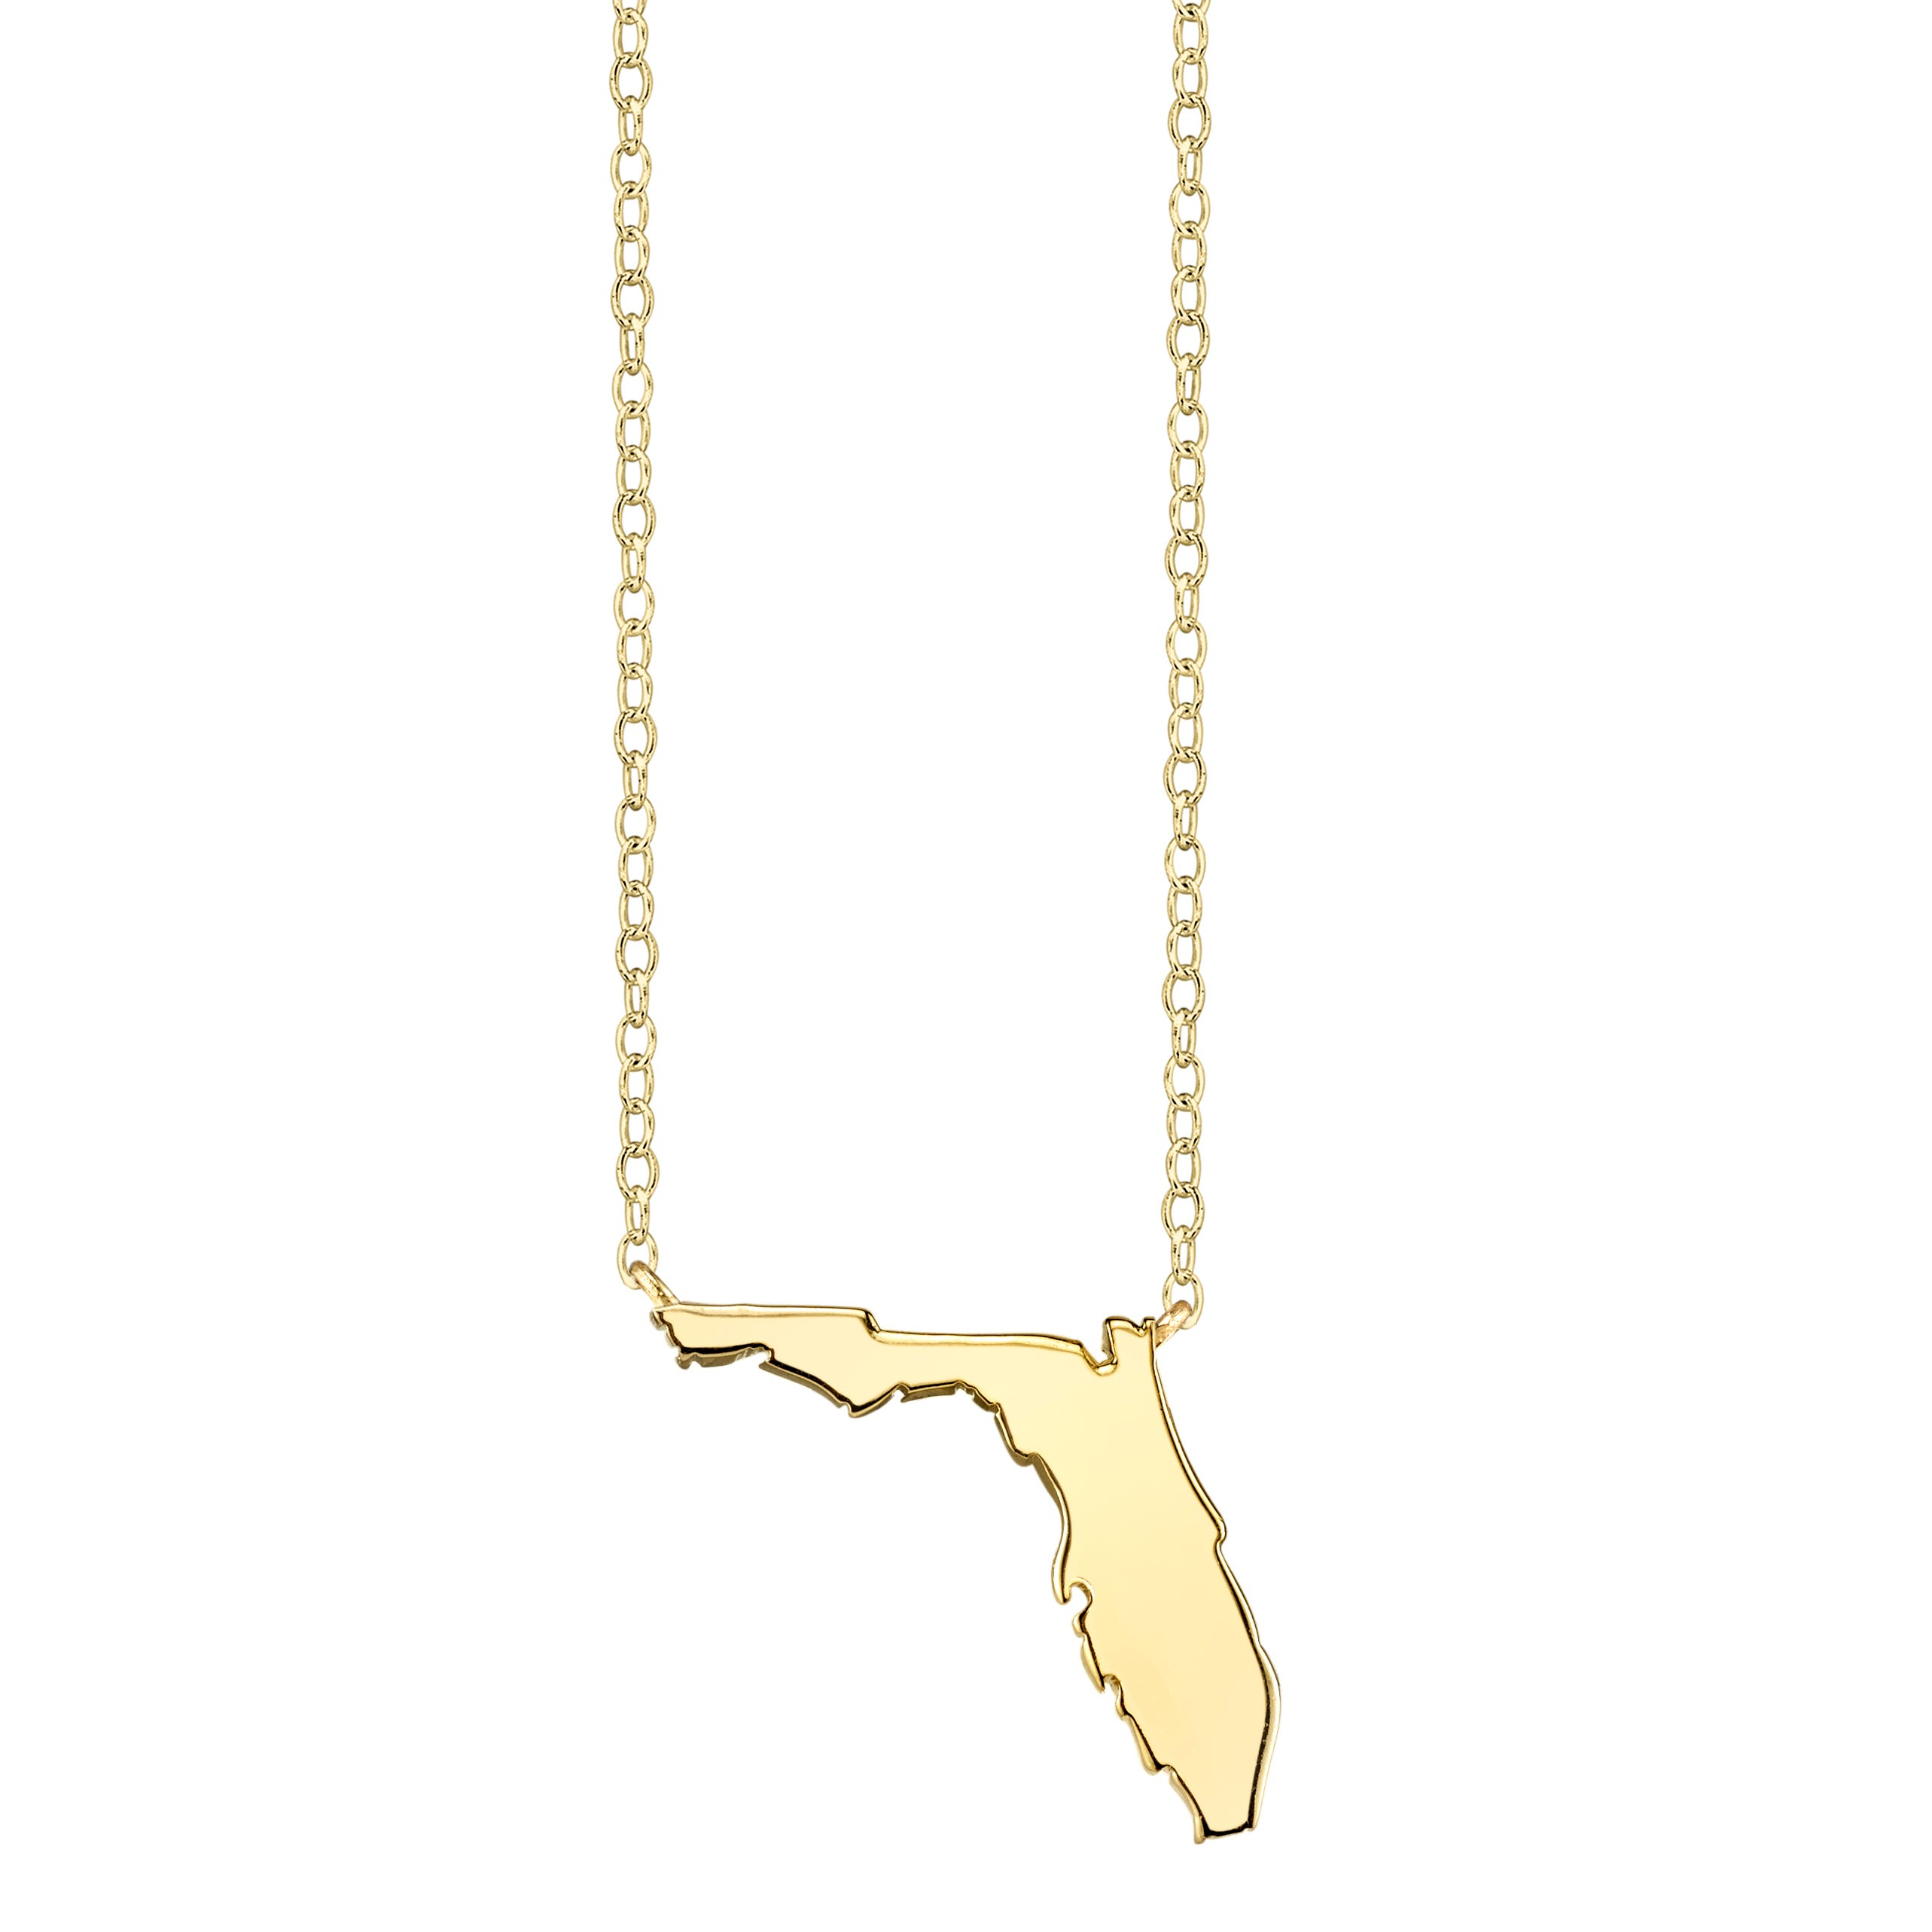 Florida State Pendant Necklace in Yellow Gold Plated Sterling Silver